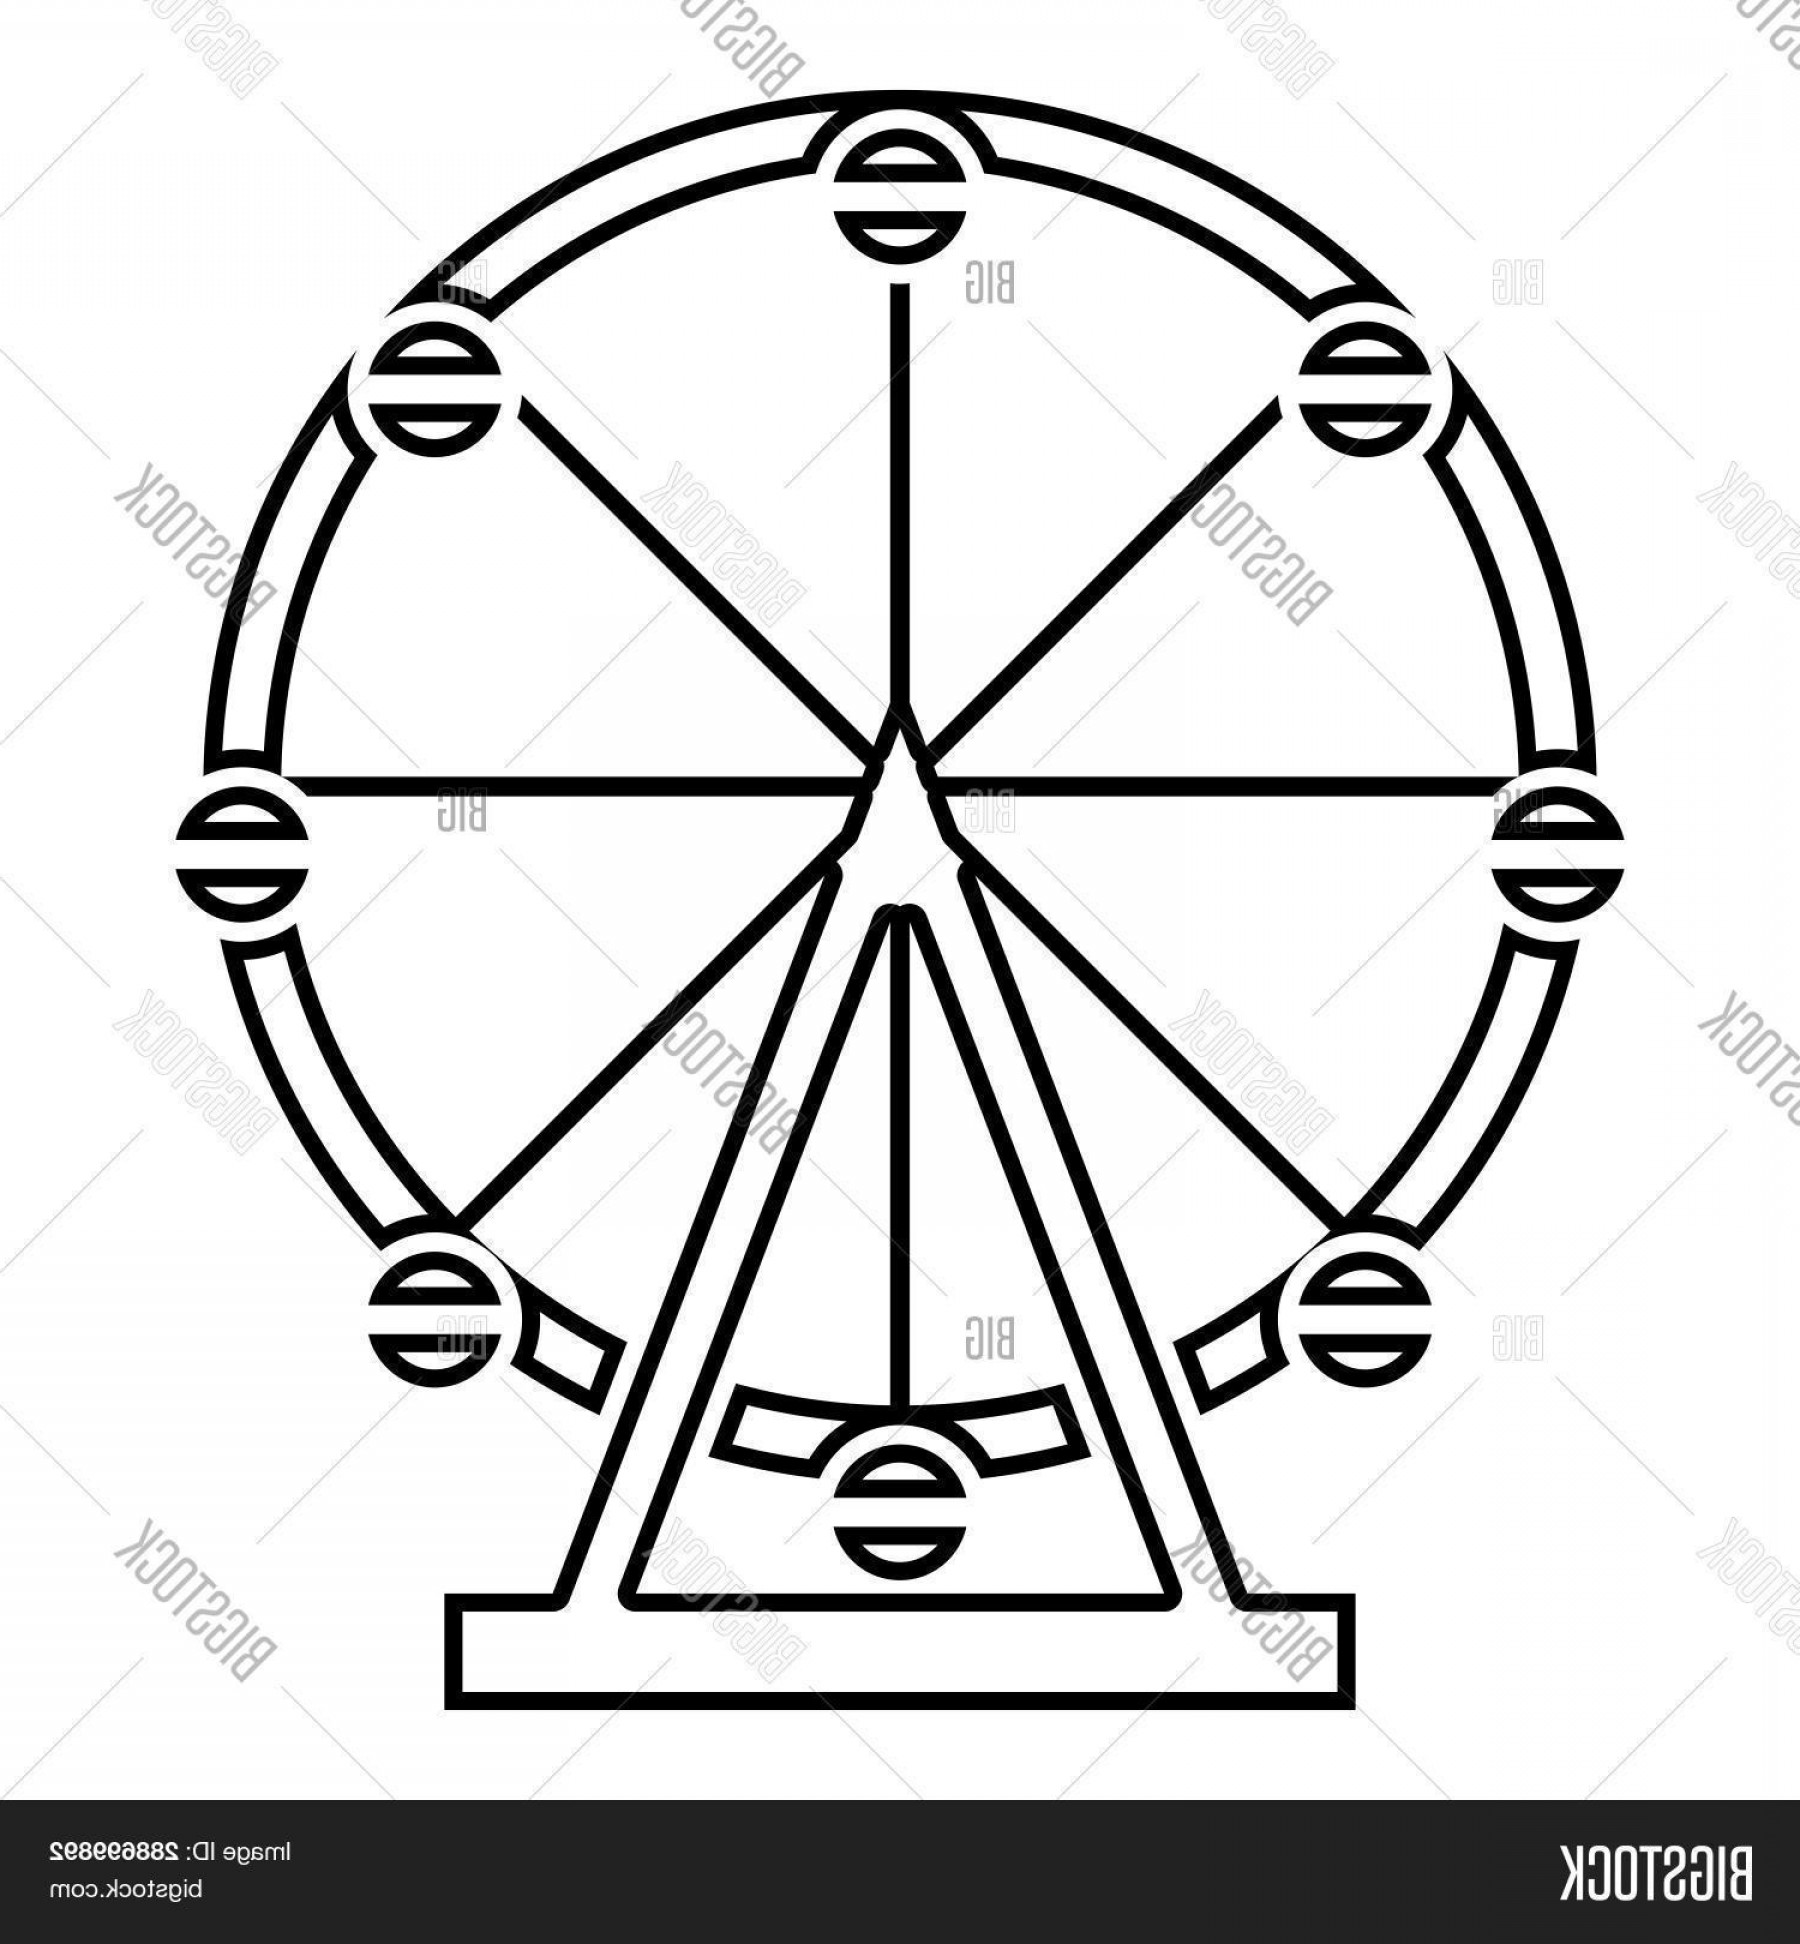 Attraction Icon Vector: Stock Vector Ferris Wheel Amusement In Park On Attraction Icon Black Color Outline Vector Illustration Flat Style